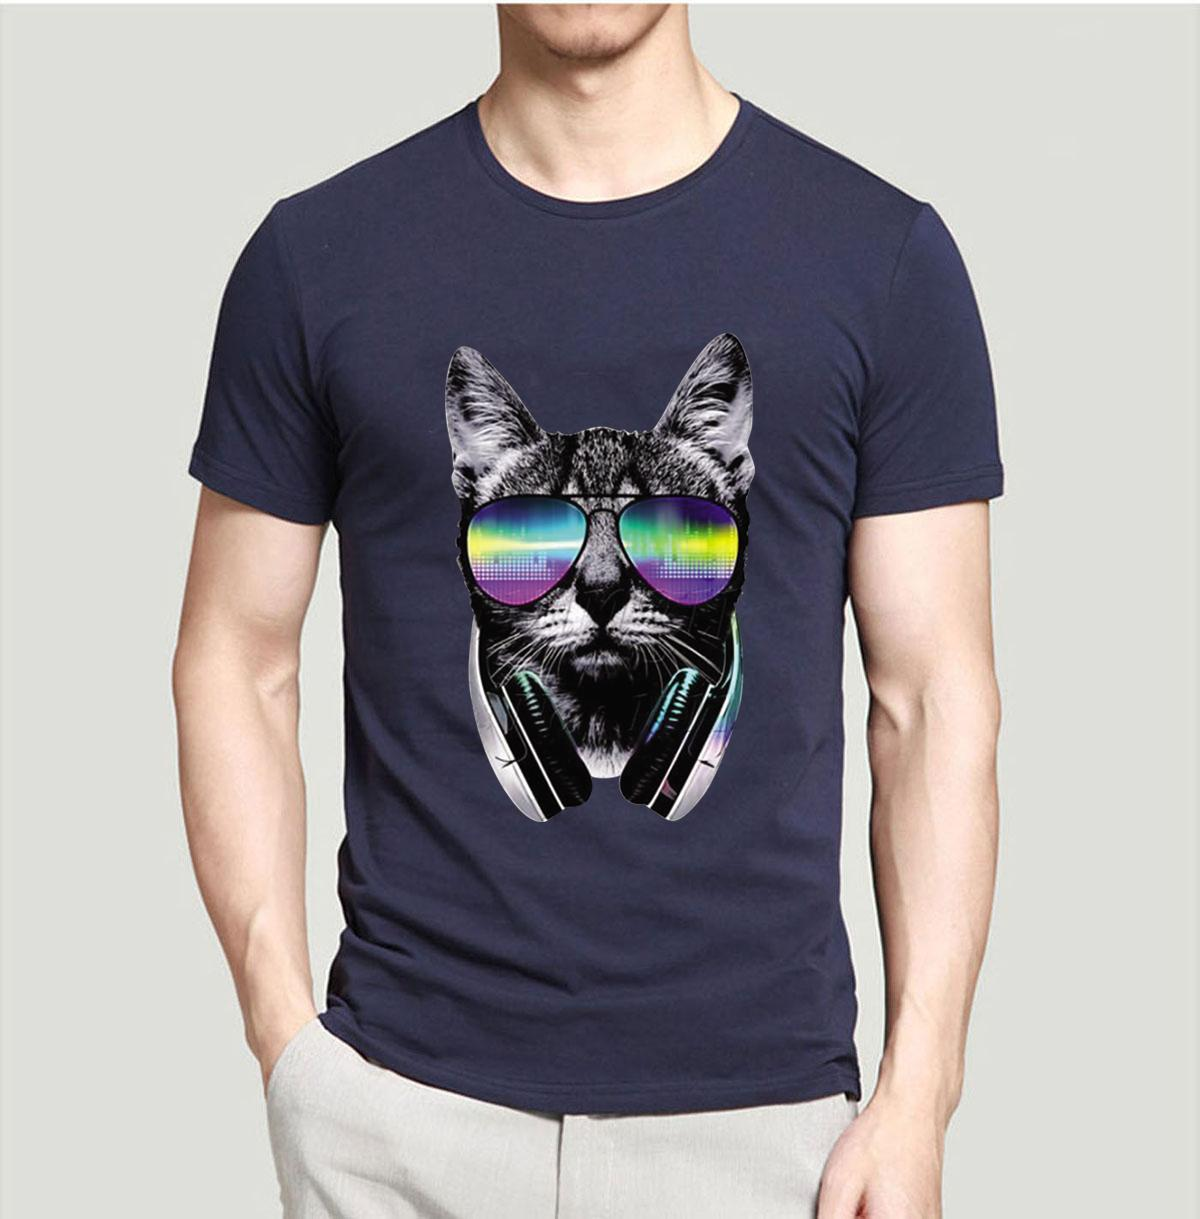 Music Dj Cat Funny T Shirts Unique Design Cool Animal Printed Anime Shirt 2018 Summer T-shirt Men 100% Cotton Brand - Clothing